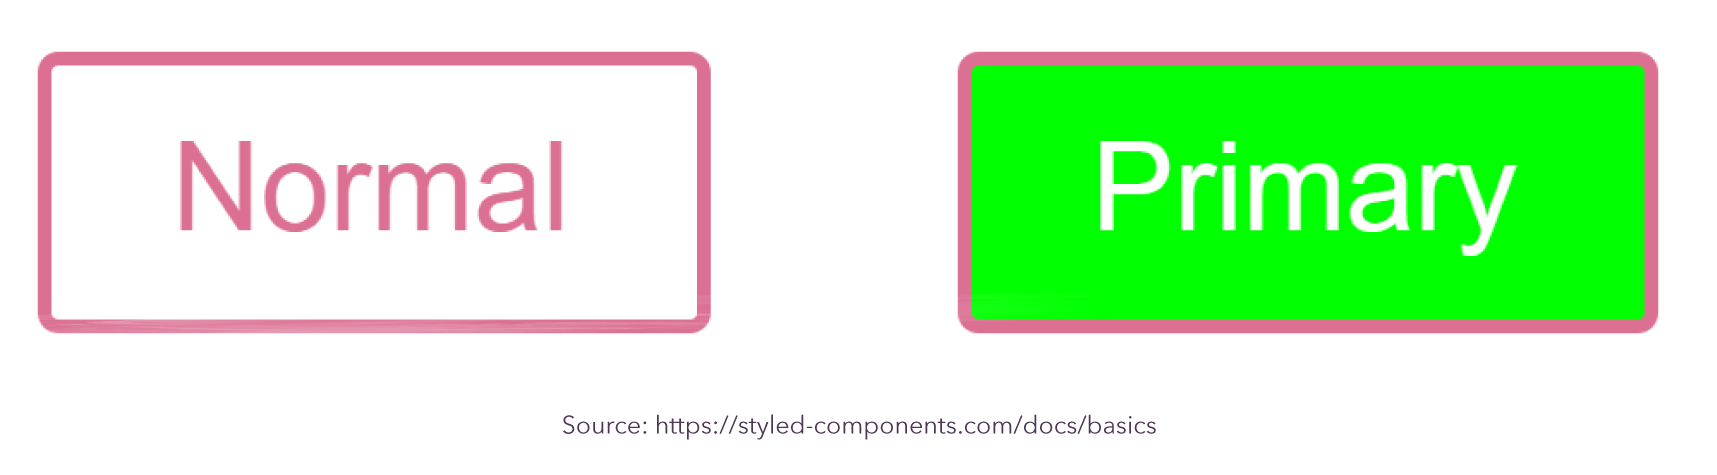 6 Ways Styled-Components Could Benefit Your Next Application